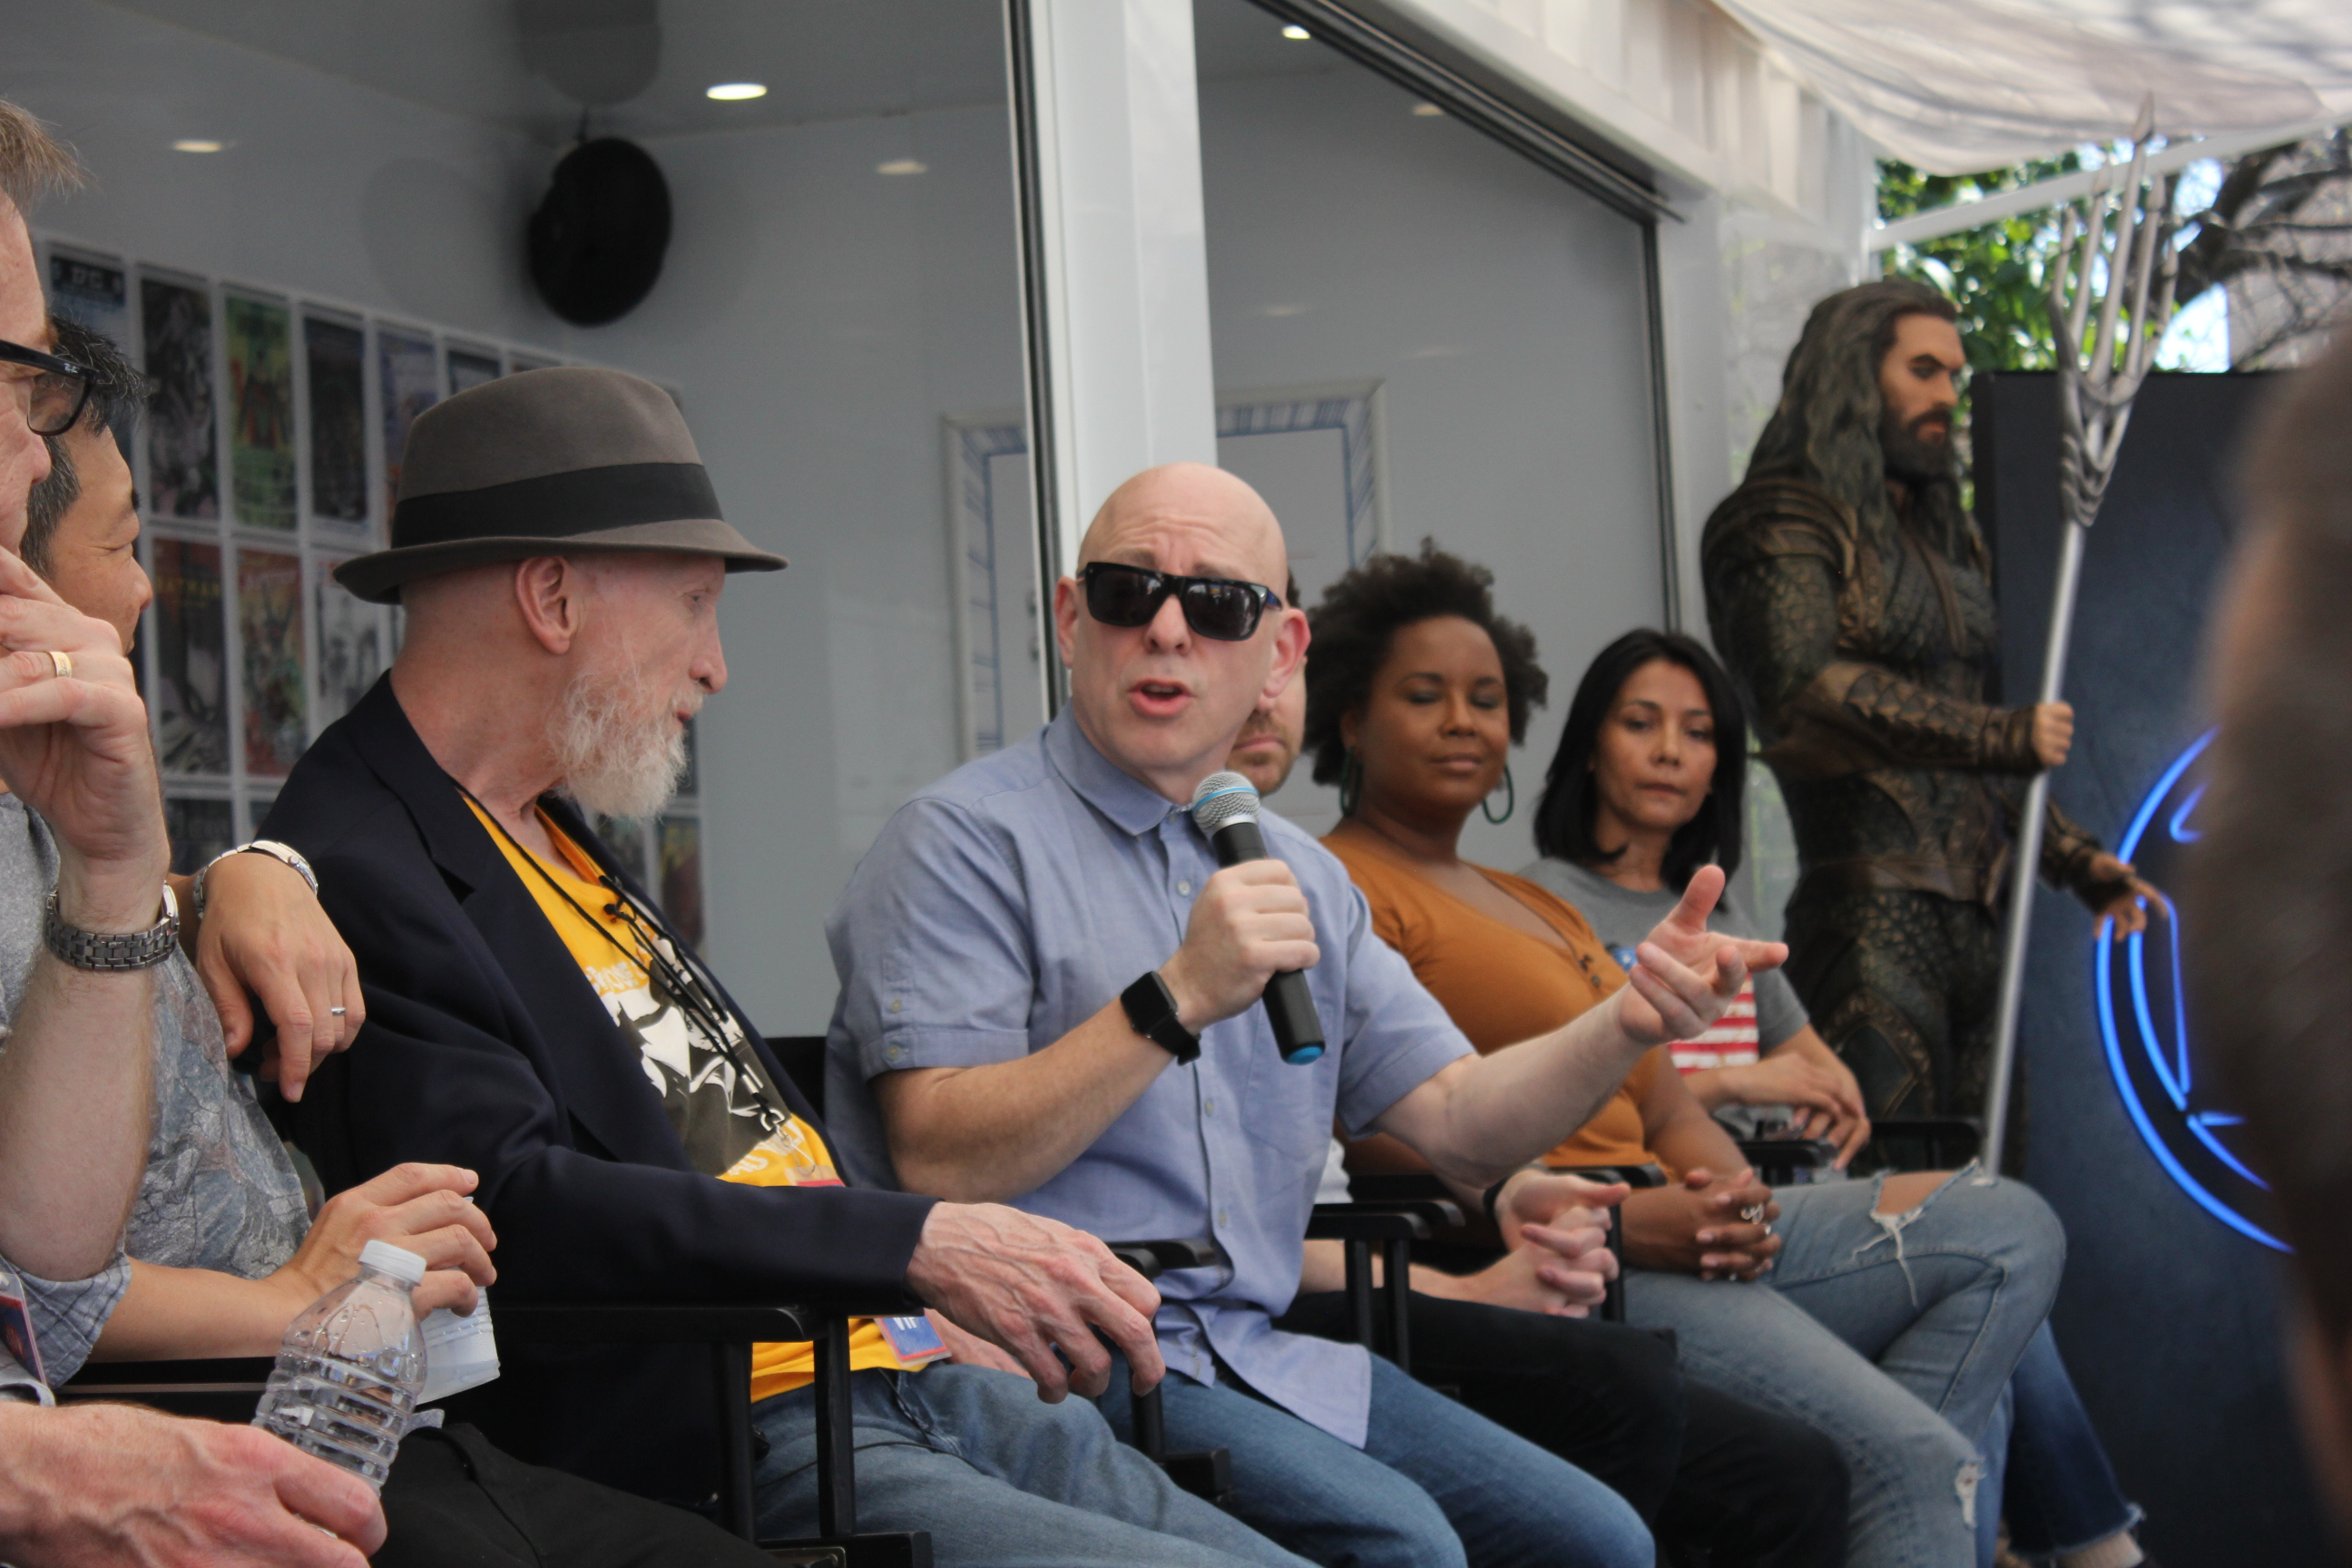 Brian Michael Bendis, seated with Frank Miller to his right and writers Nadria Tucker and Lina Patel to his left.